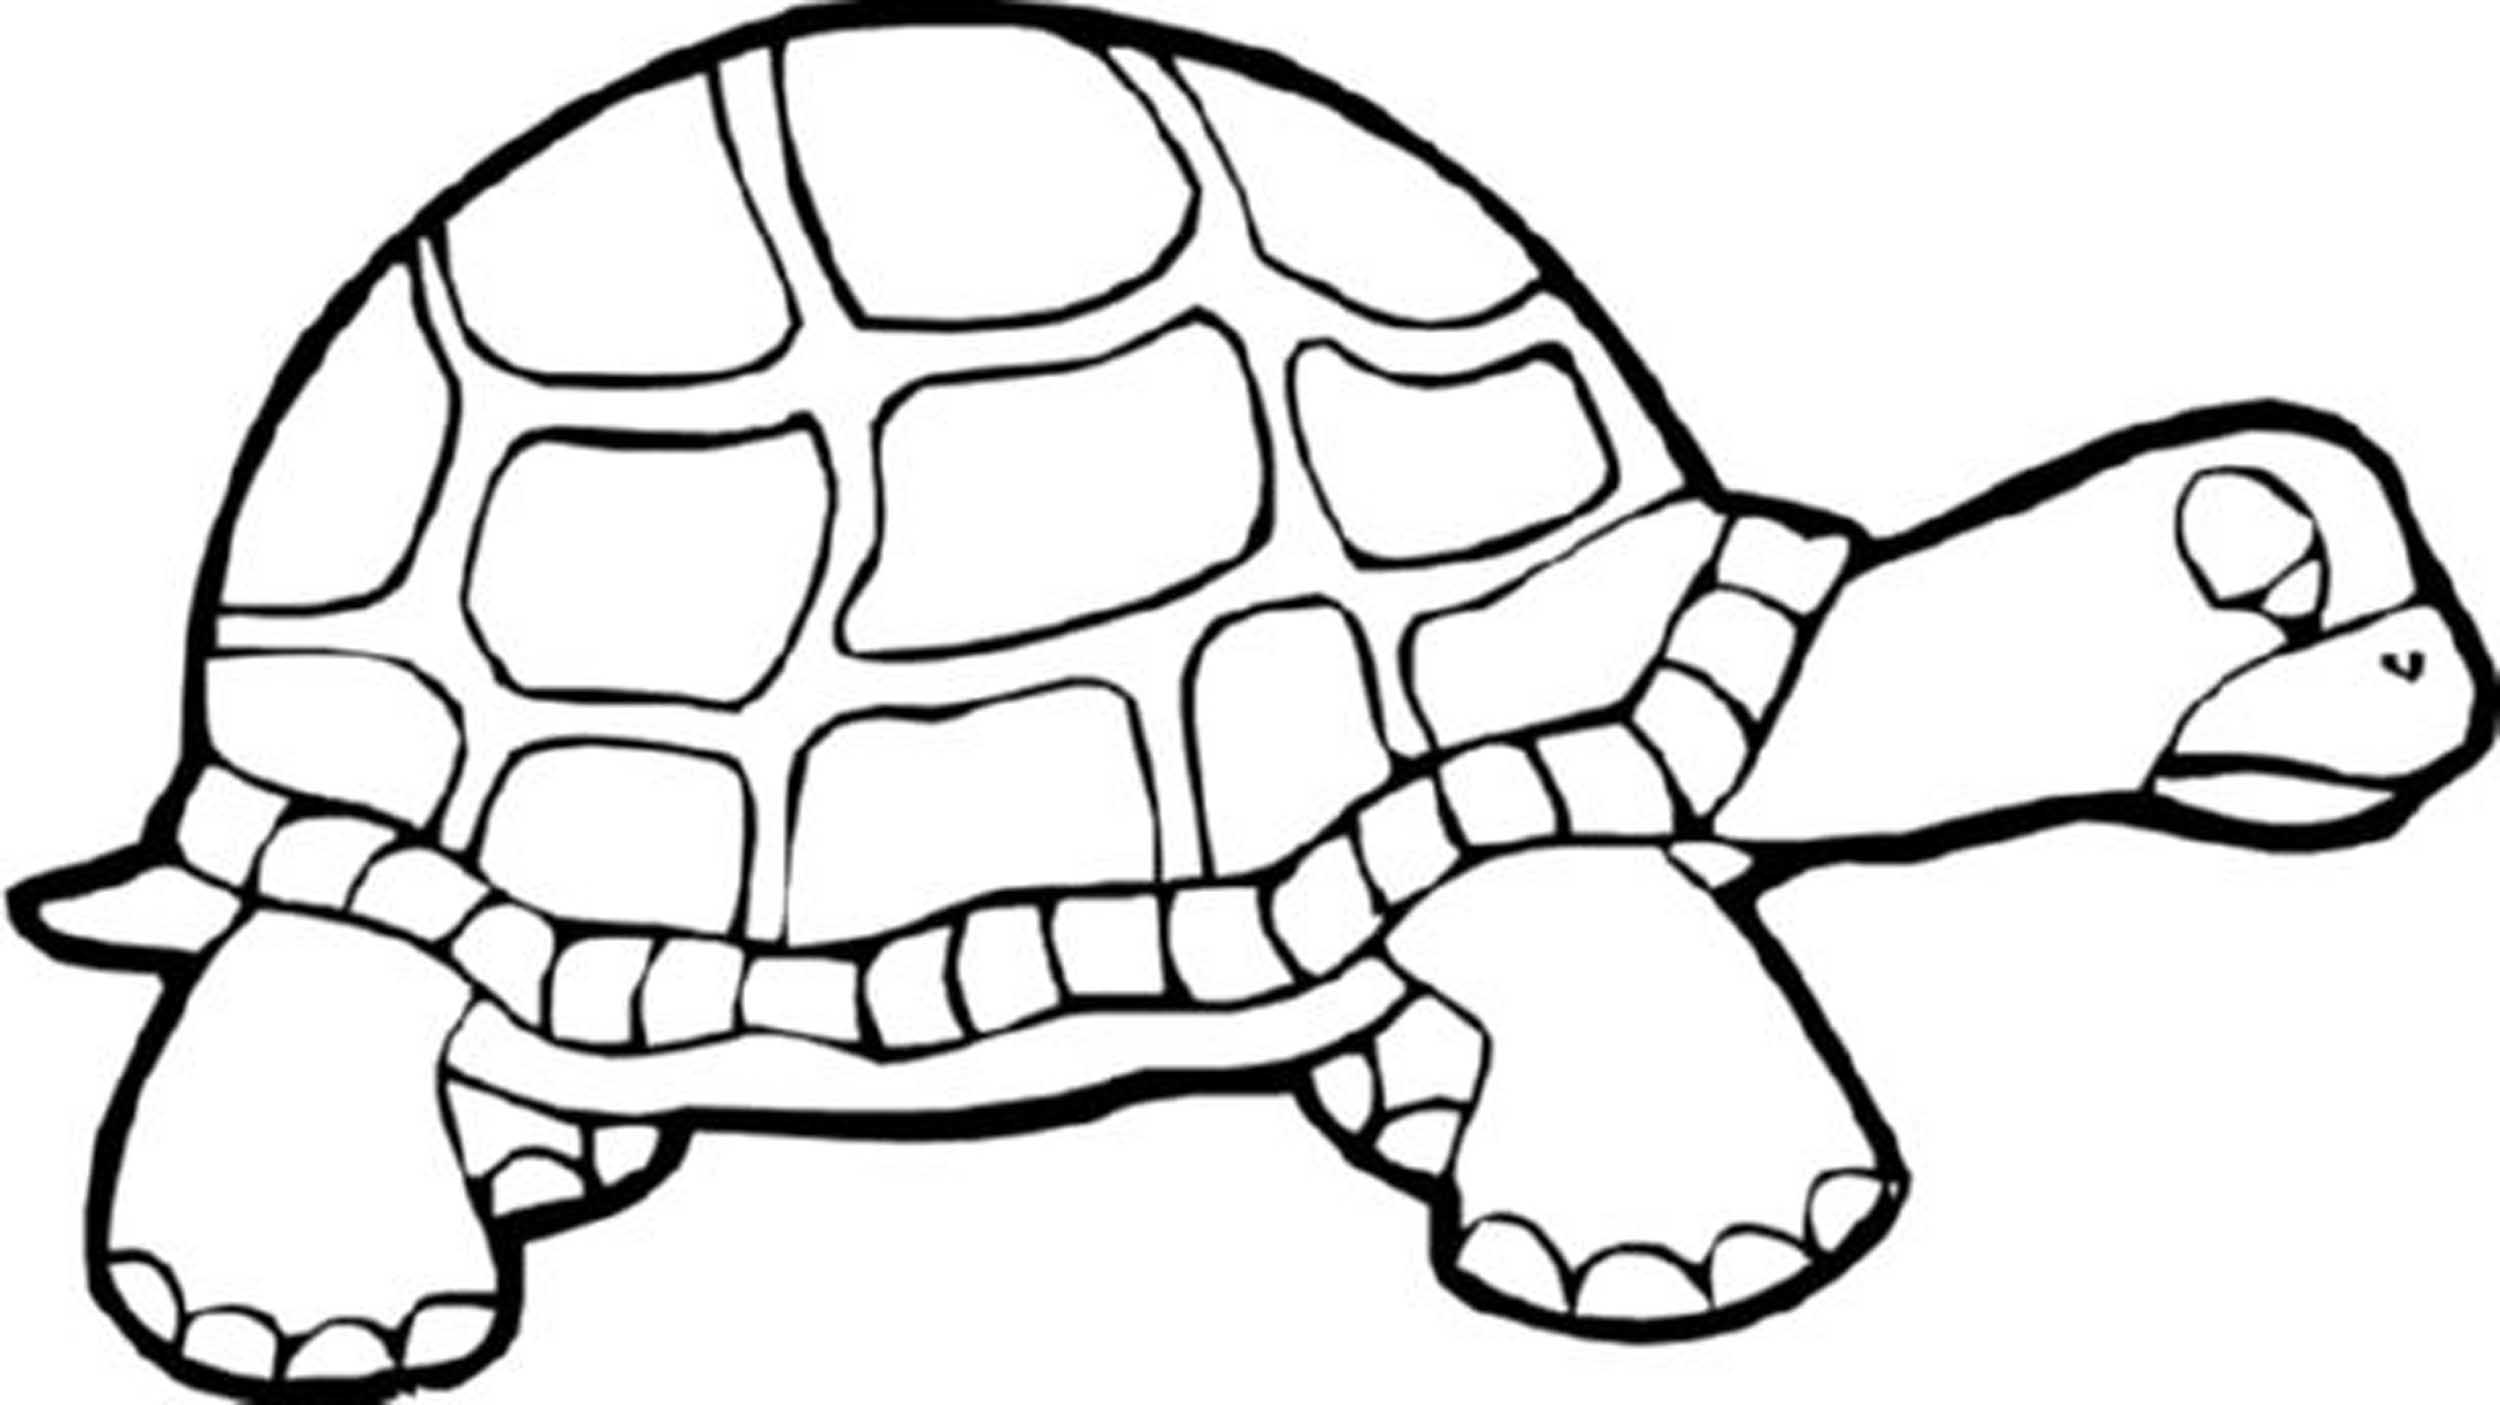 Uncategorized Coloring Page Turtle print download turtle coloring pages as the educational tool old to print